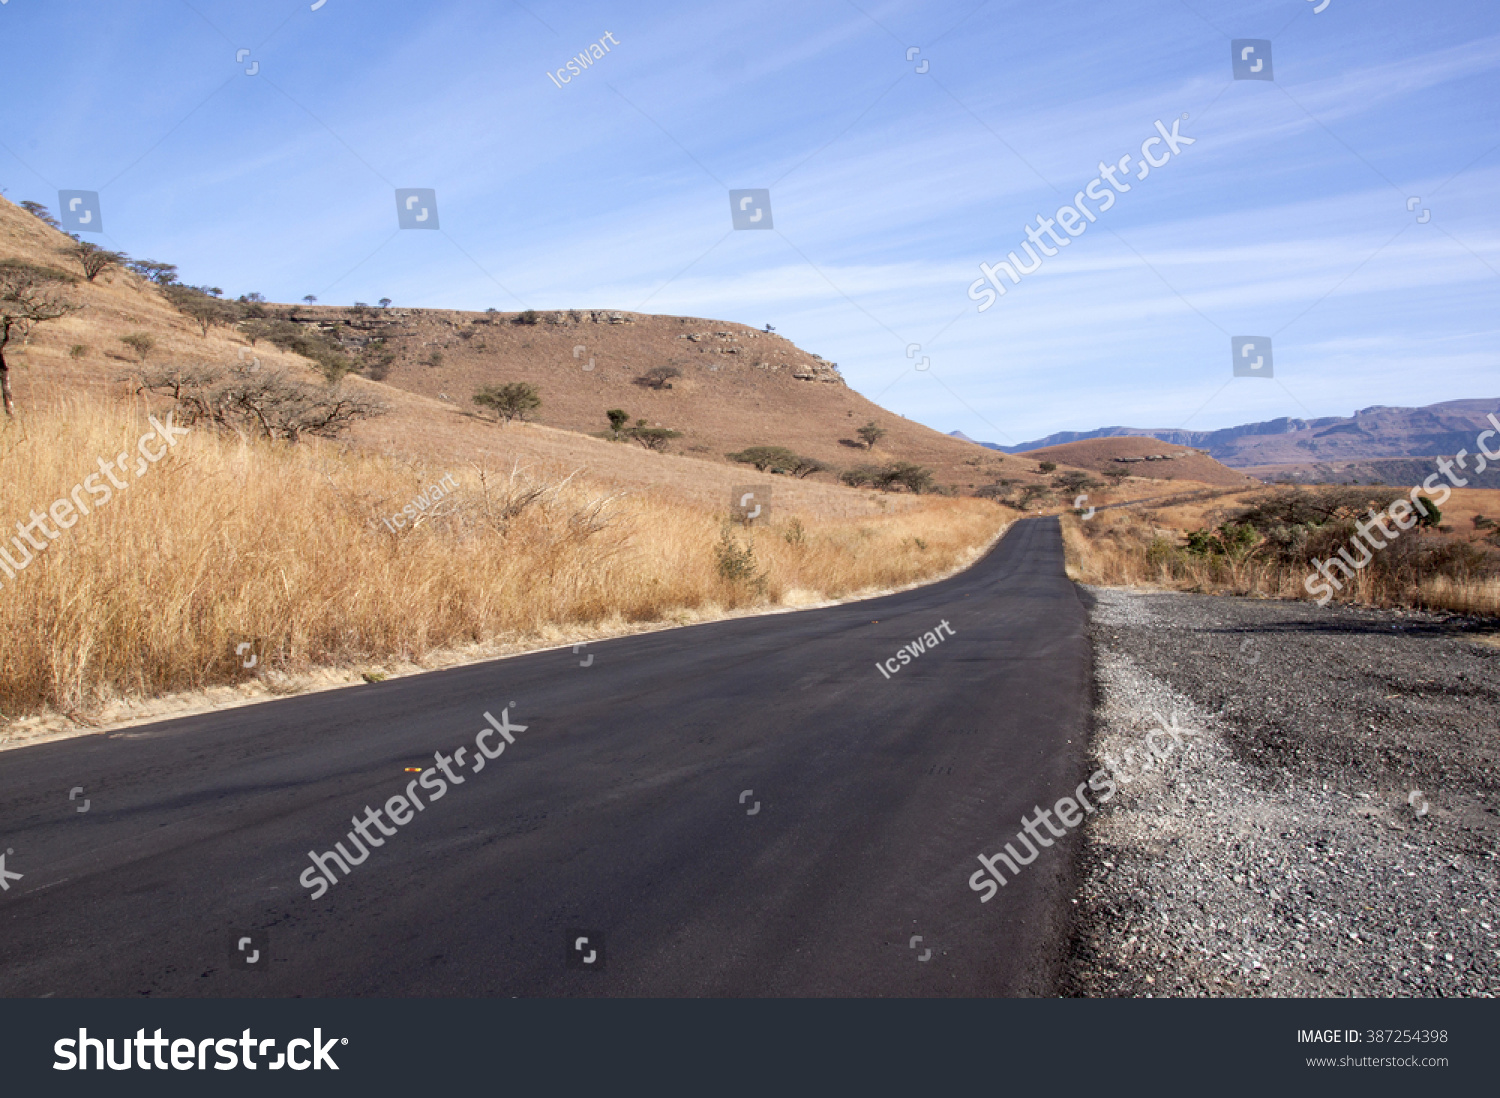 Newly Laid Asphalt Road In Dry South African Rural Landscape Stock ...